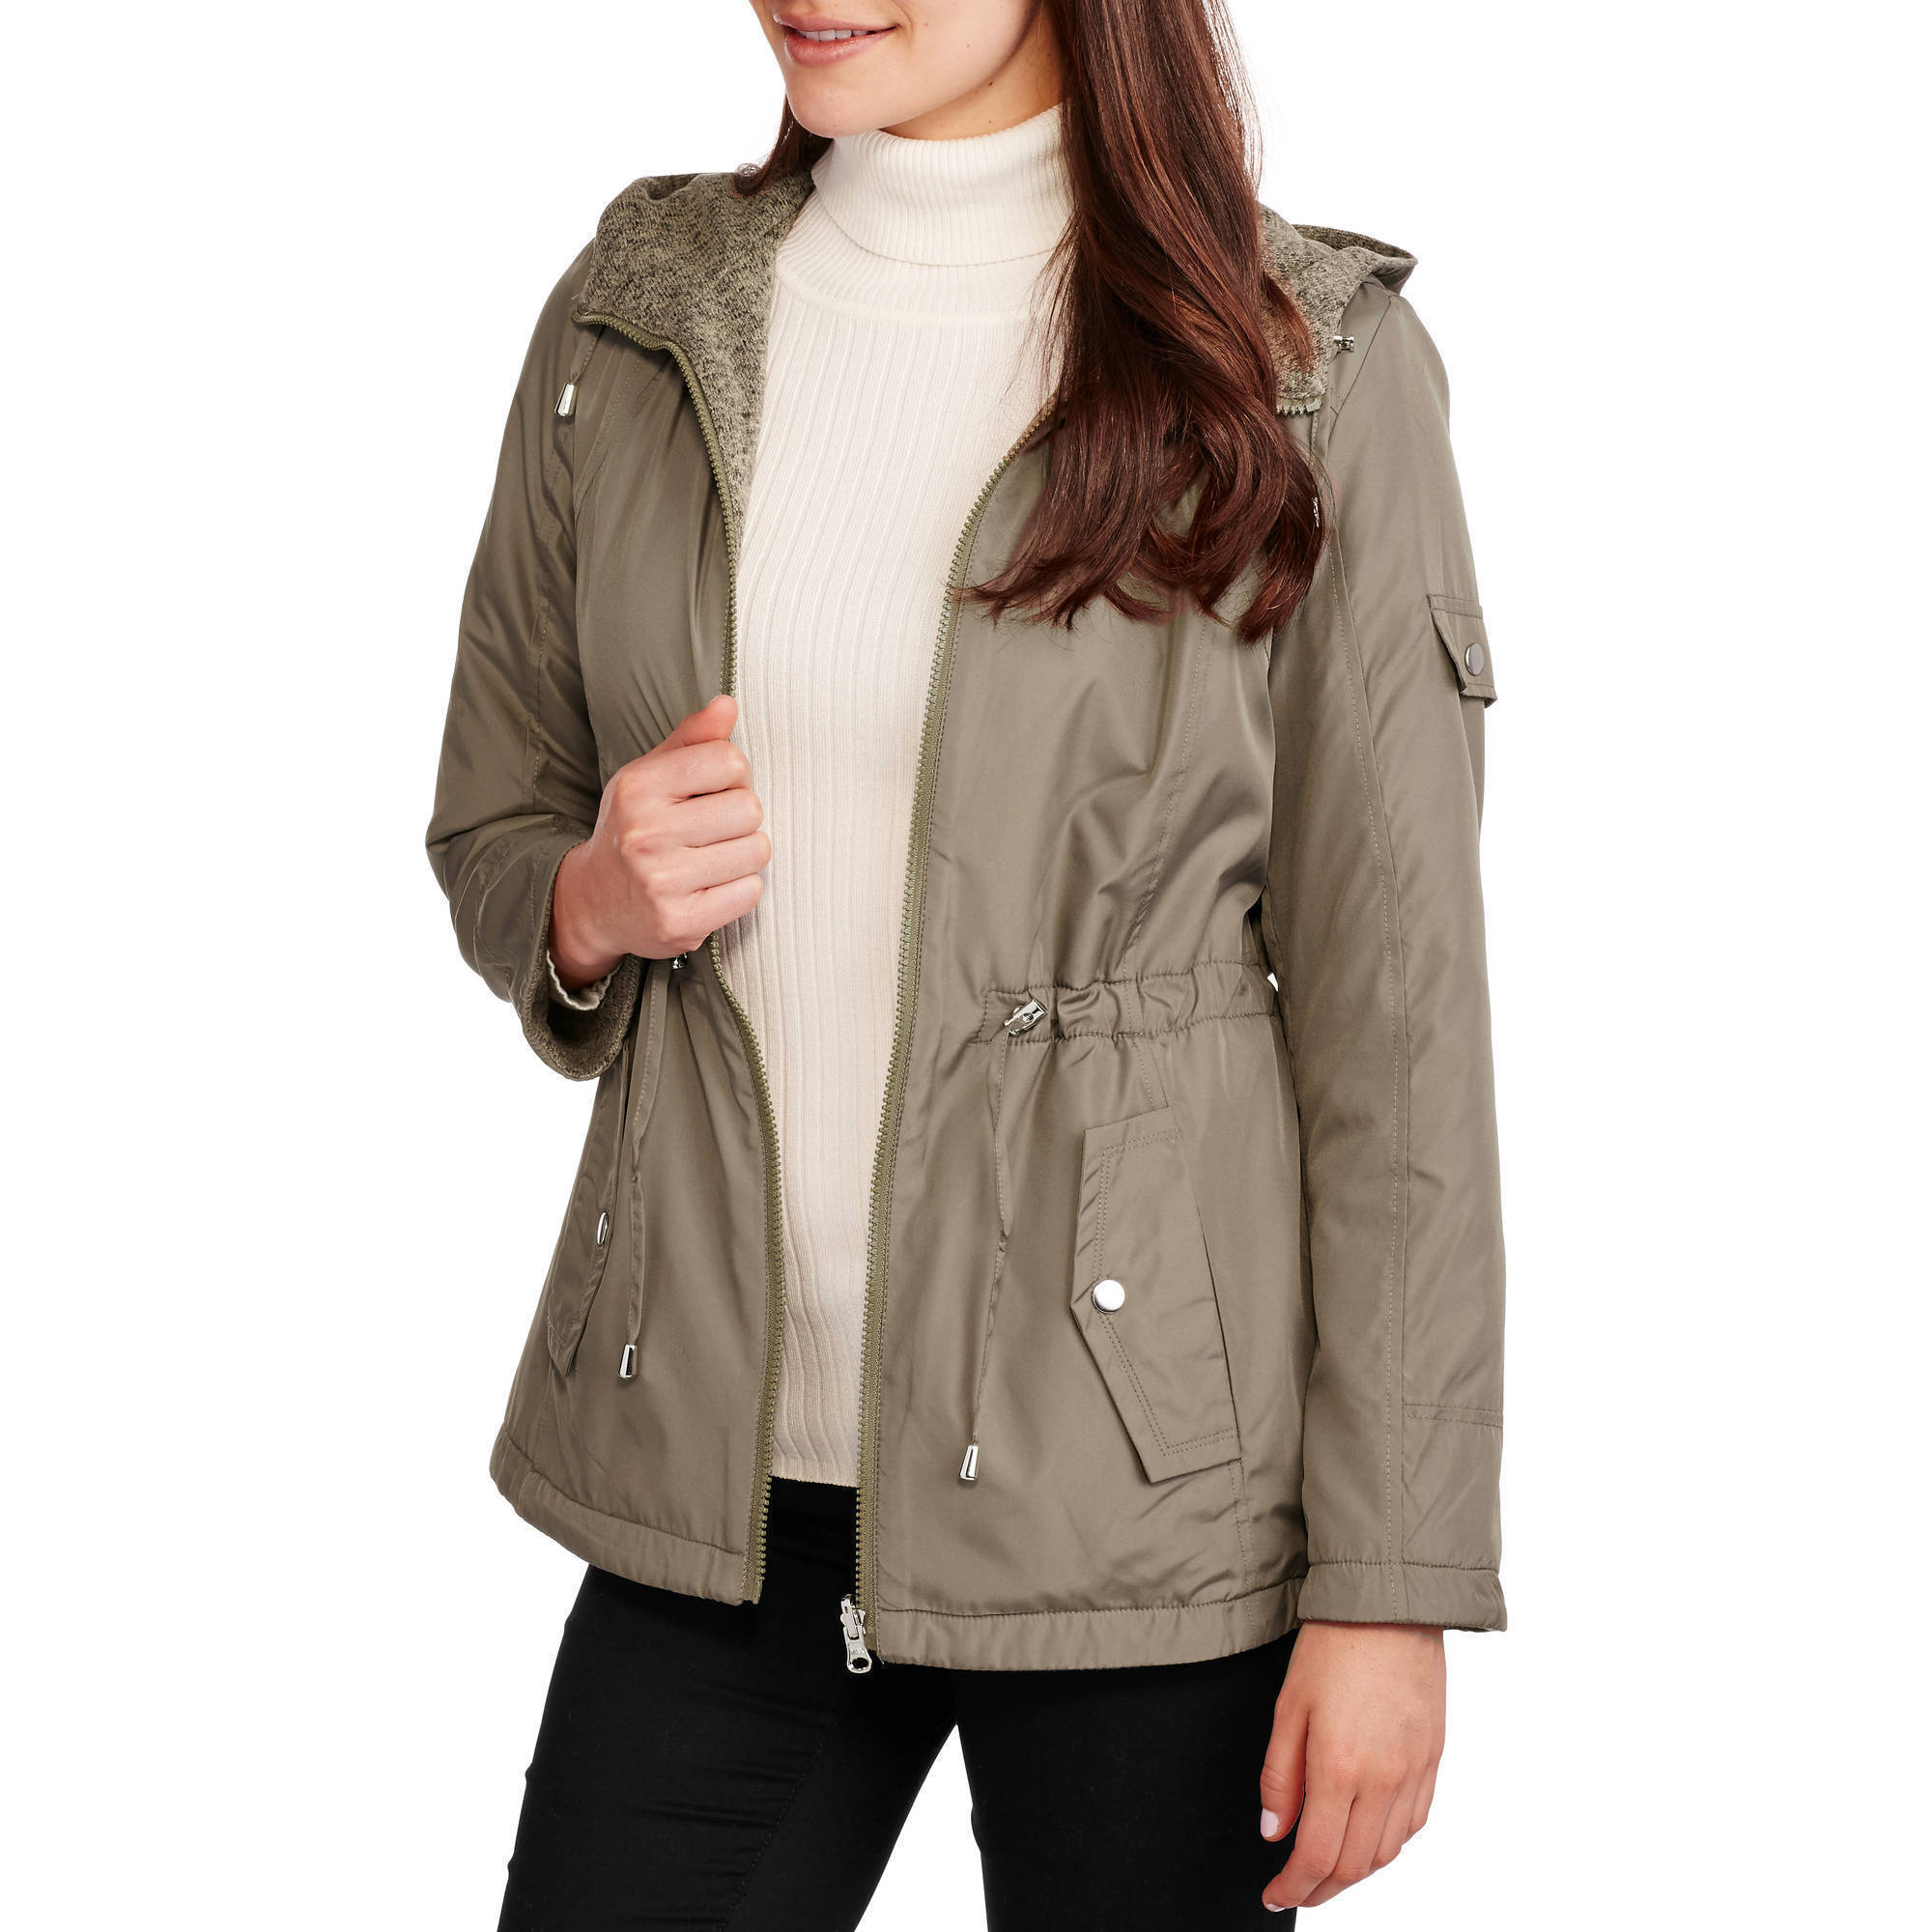 Faded Glory Women's Reversible Anorak - Wear It Two Ways!